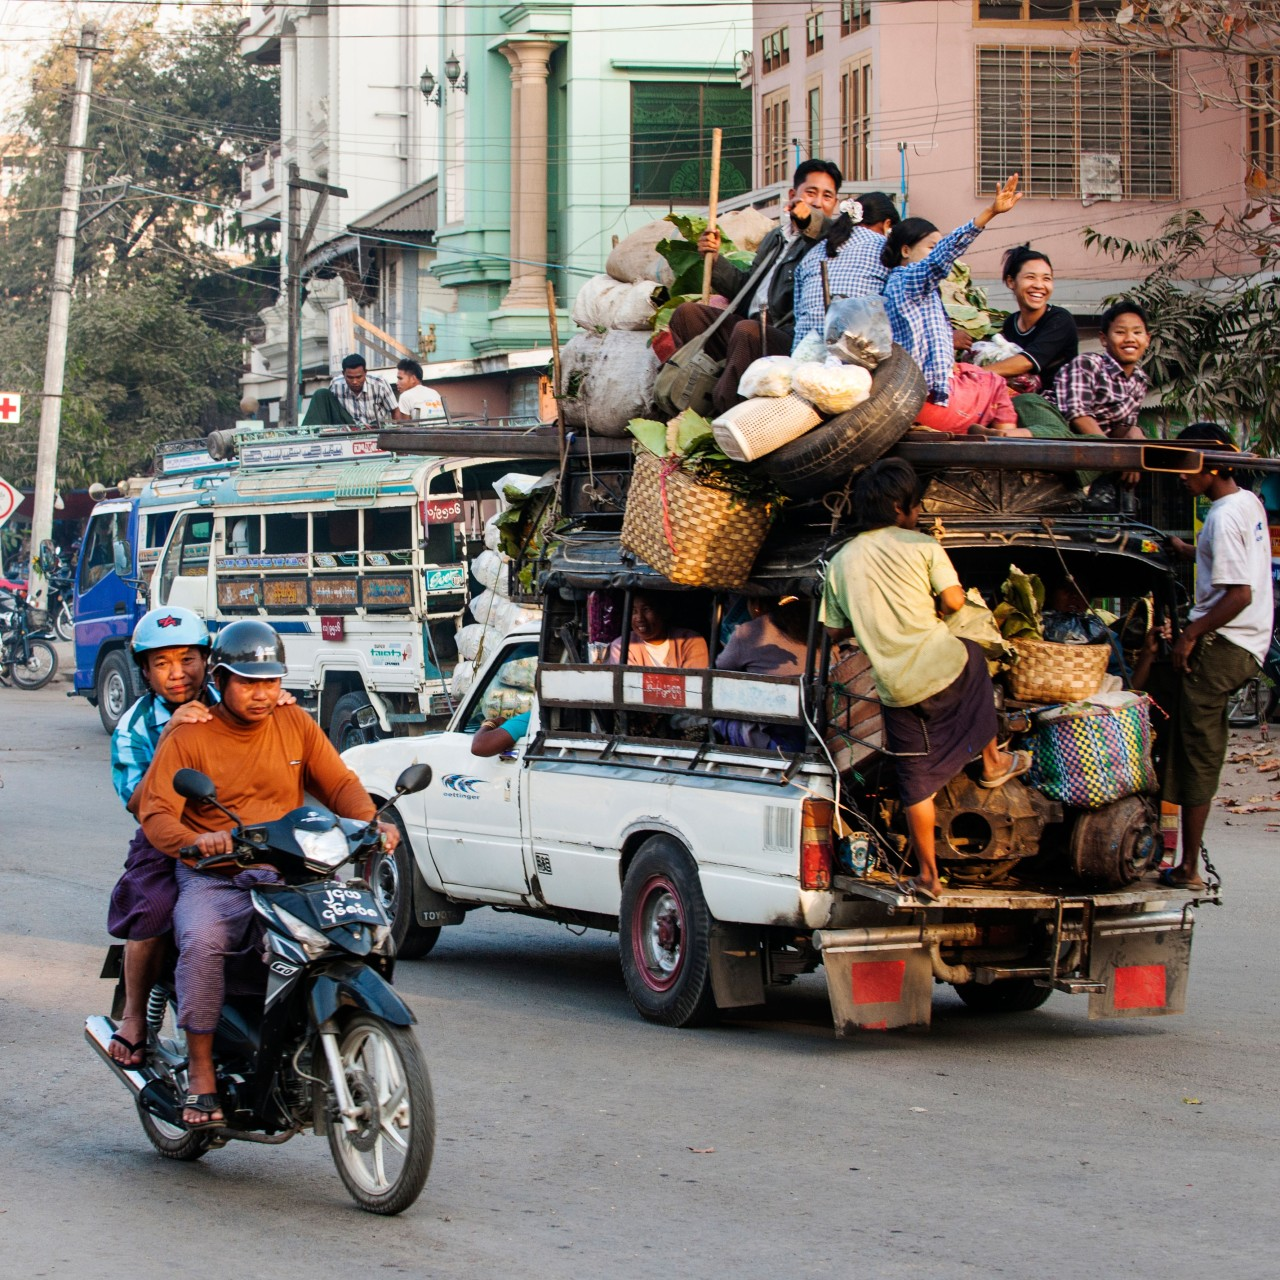 Myanmar's beauty and troubles laid bare in A Savage Dreamland by